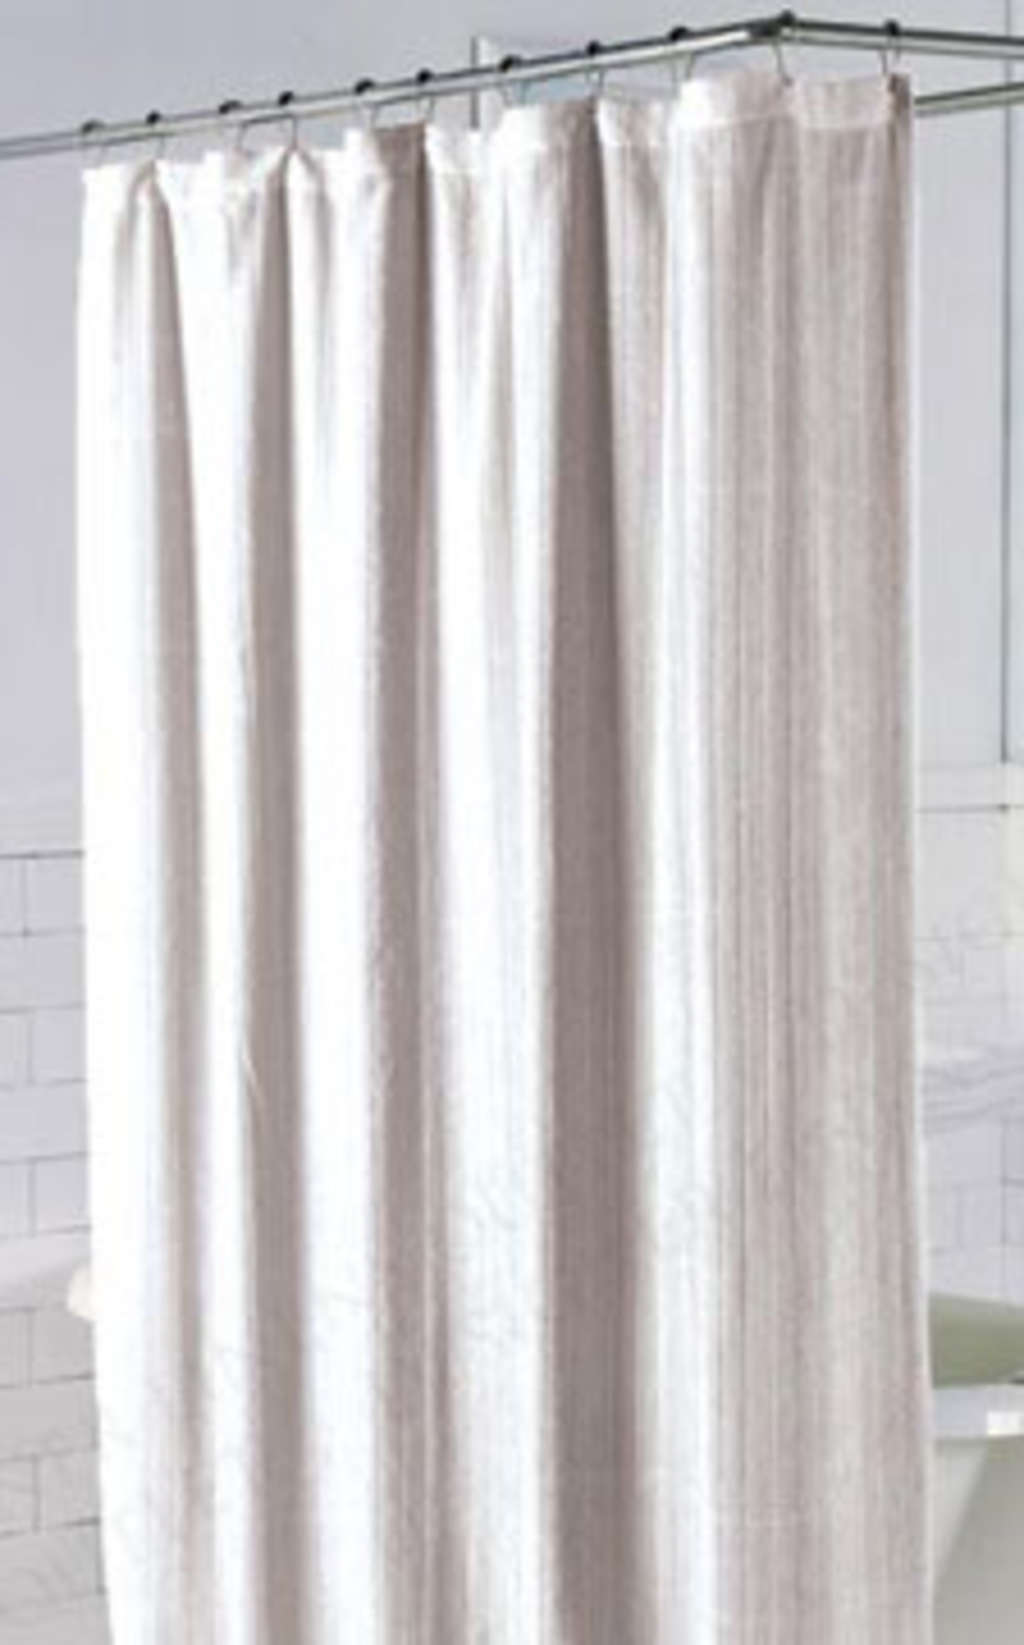 How To Clean Shower Curtains With Vinegar